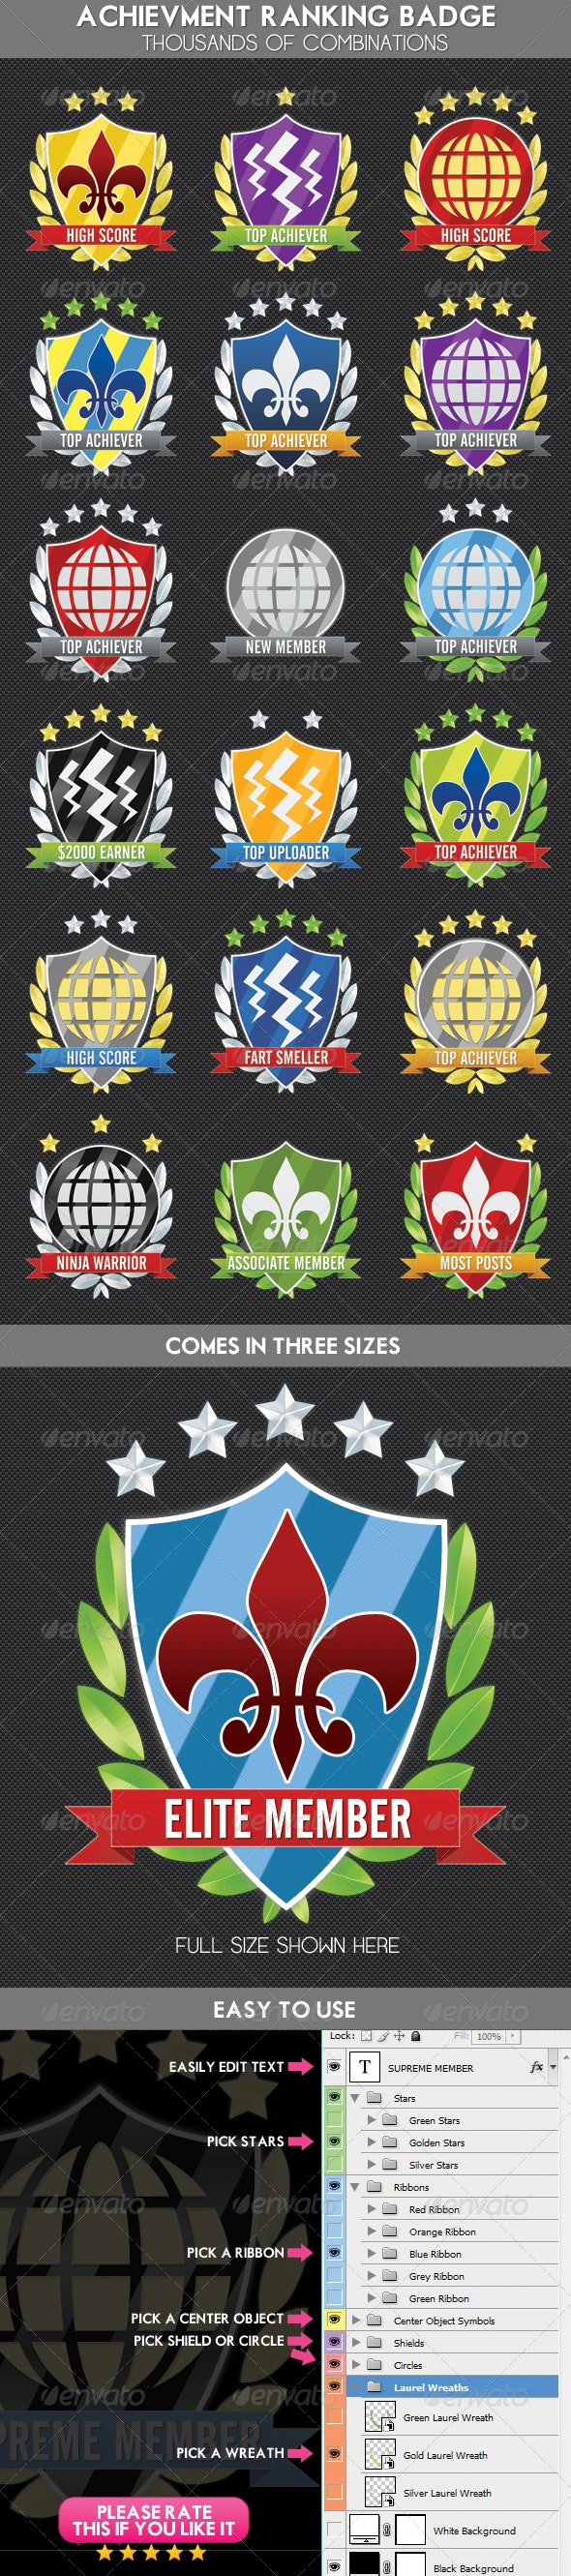 Achievement, Ranking Experience Shield Award Badge - Badges & Stickers Web Elements